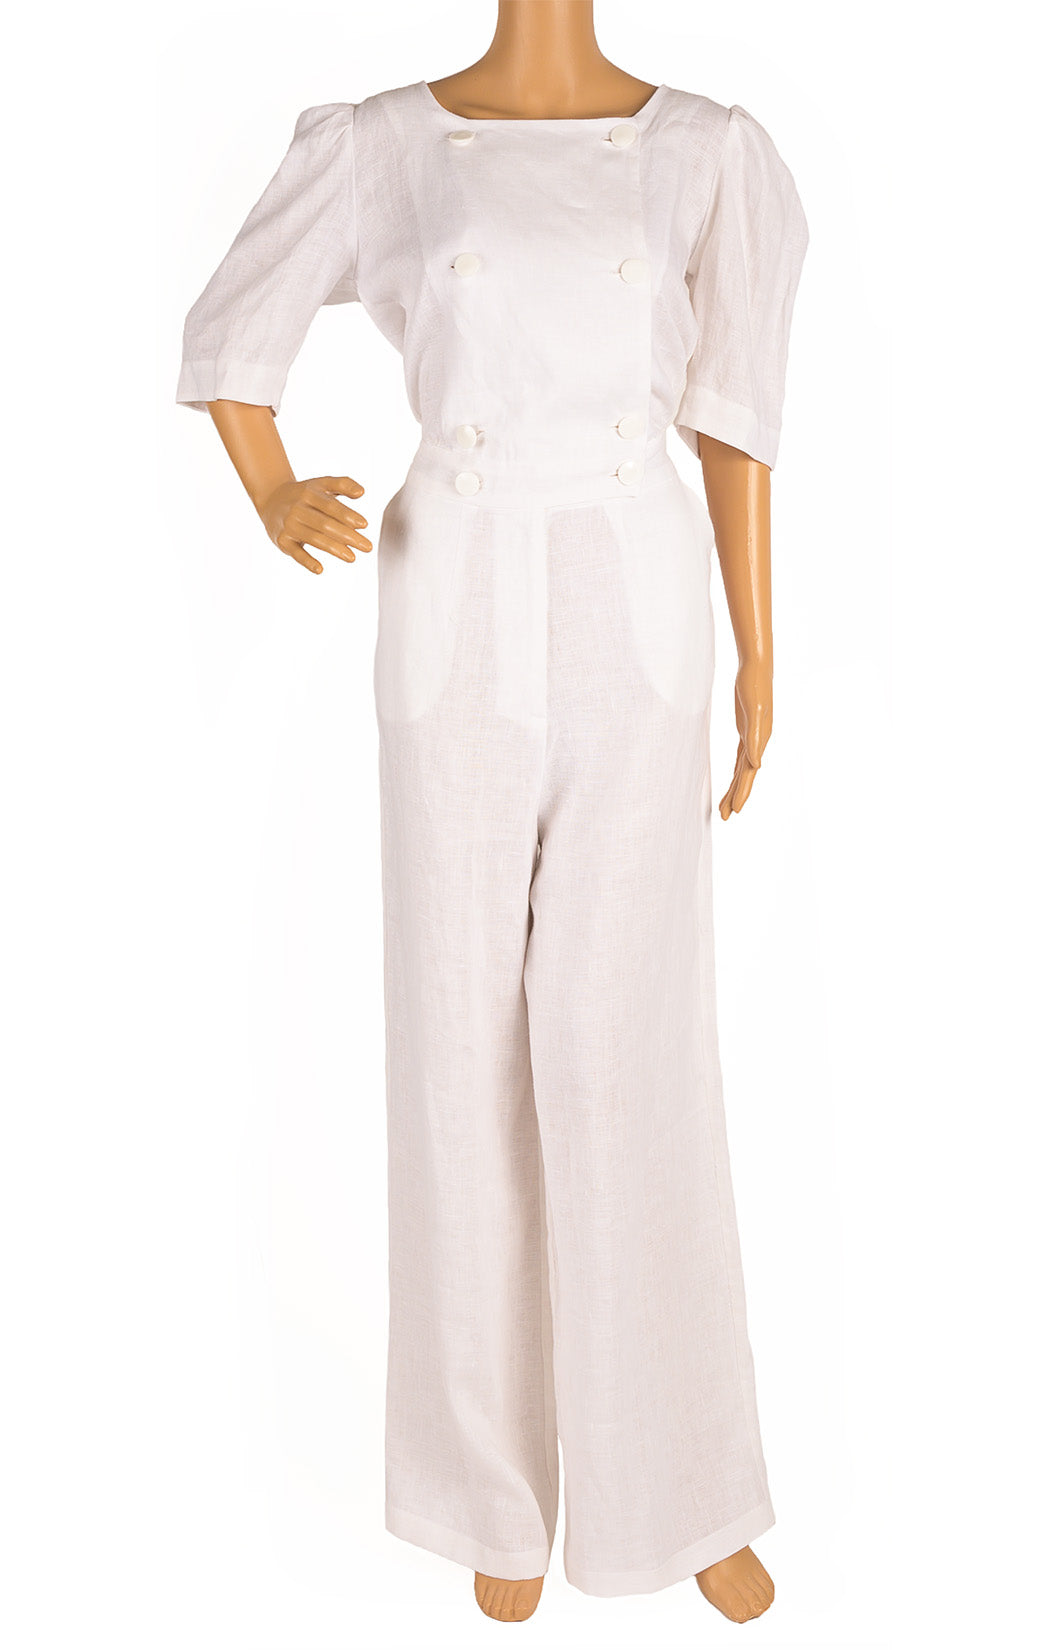 Front view of LISA MARIE FERNANDEZ  Jumpsuit  Size: No size tags fits like Medium